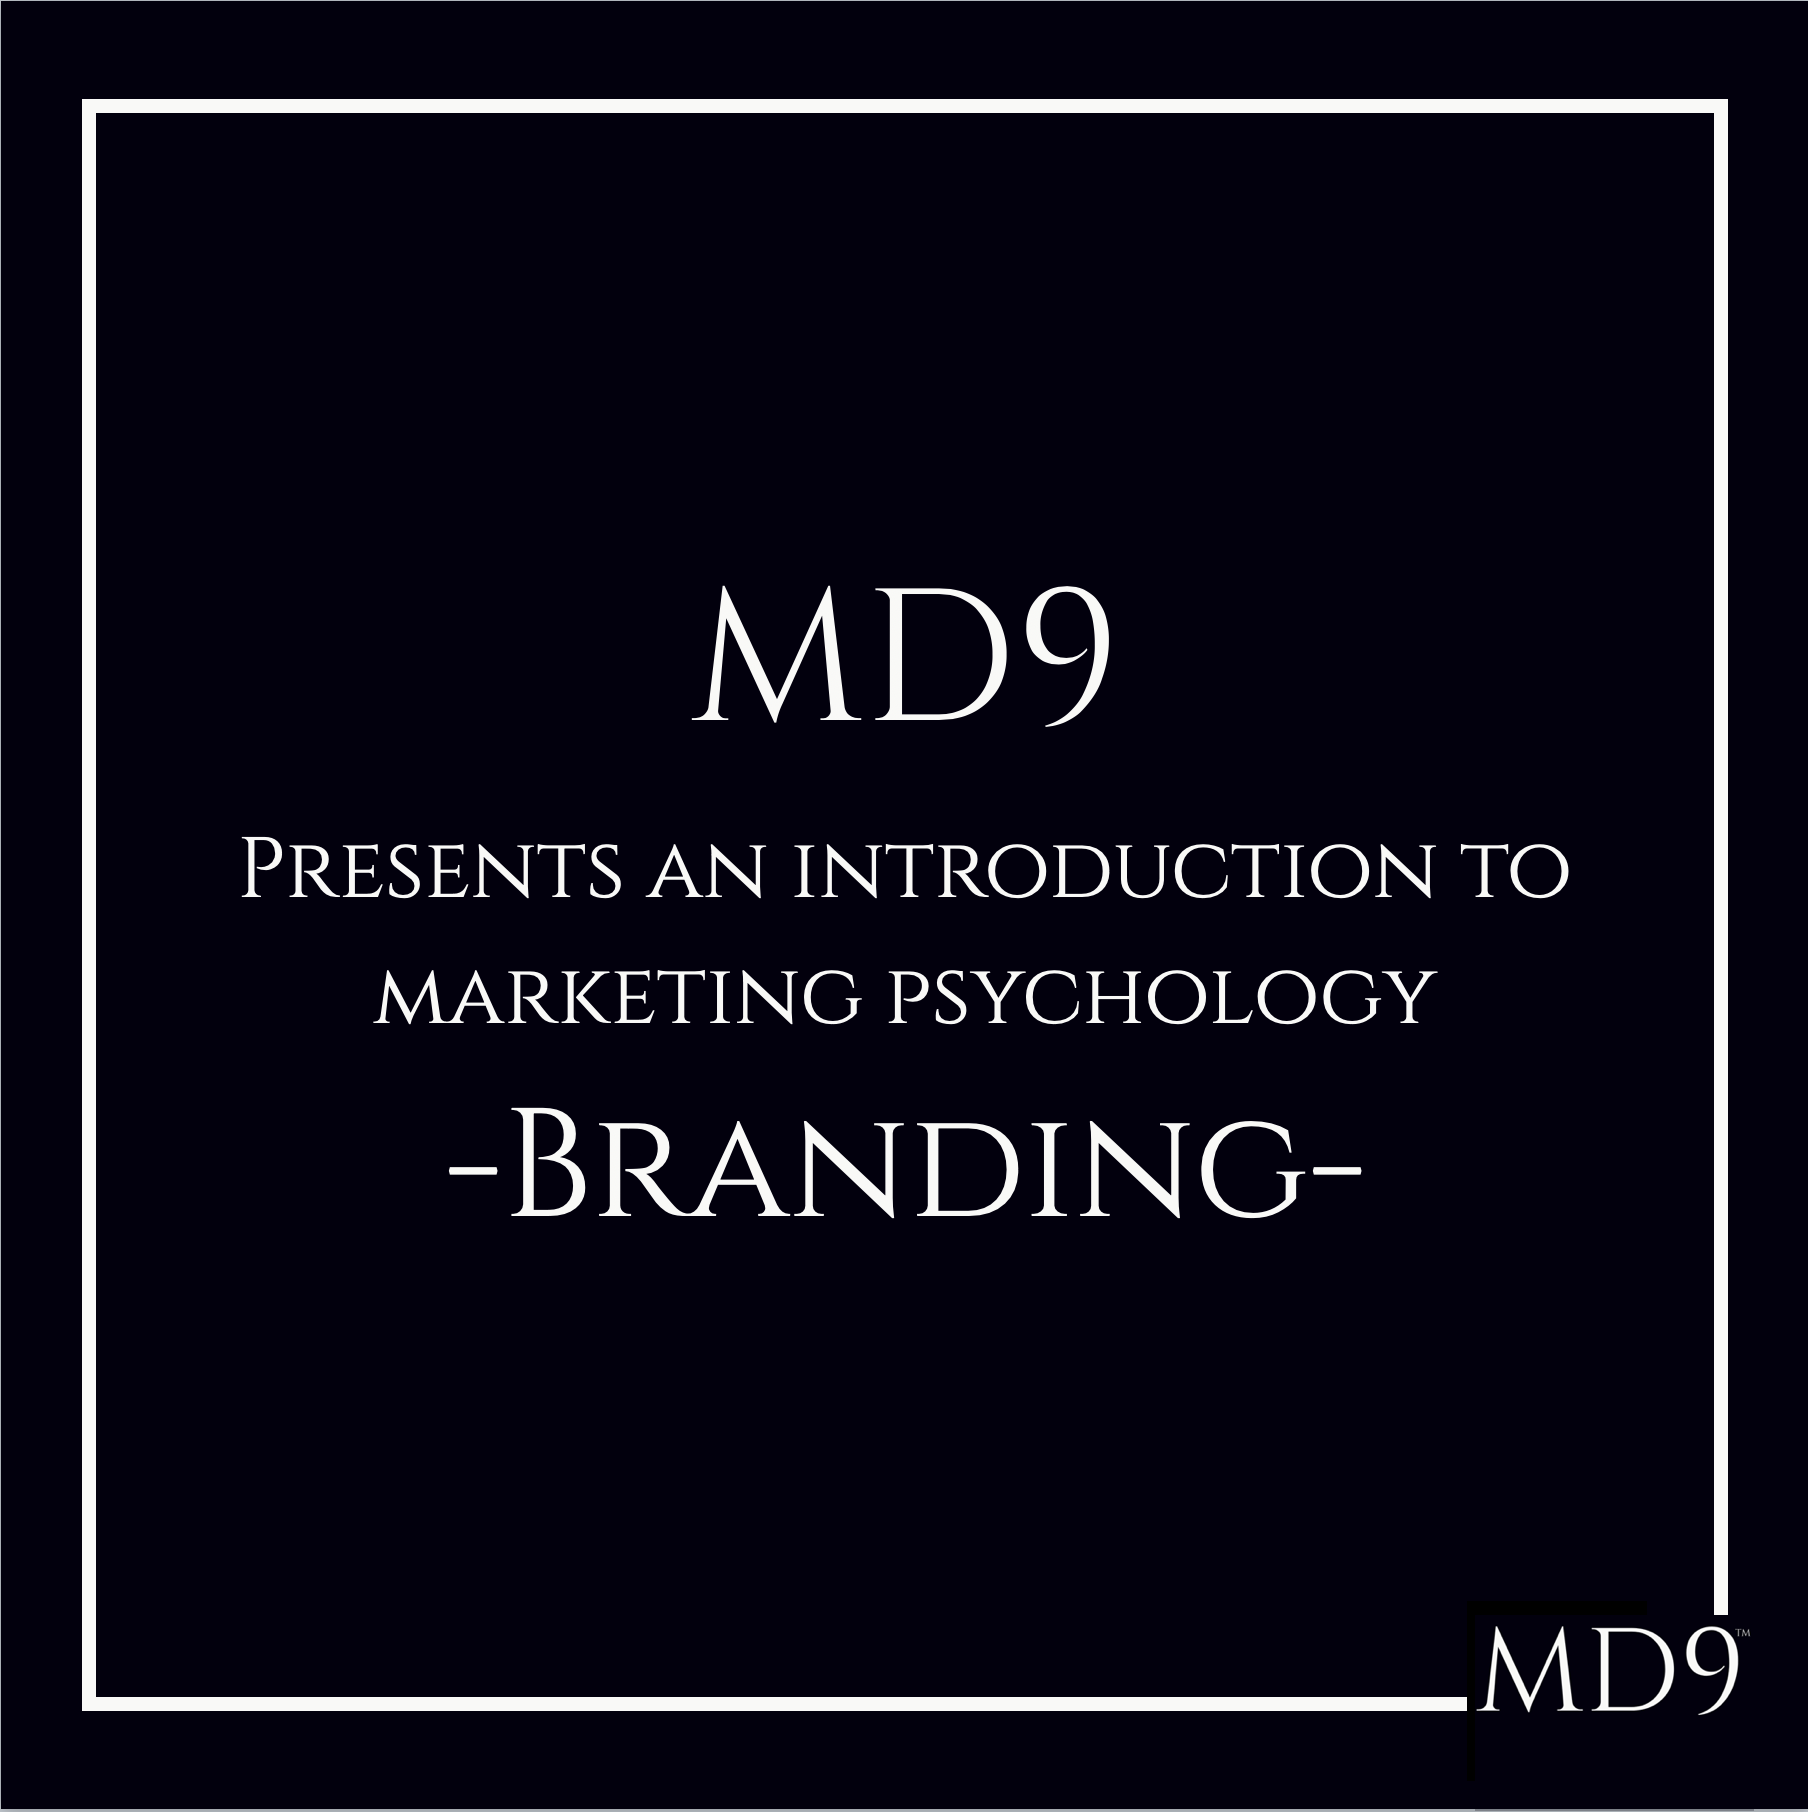 MD9's Introduction To Marketing Psychology – Branding